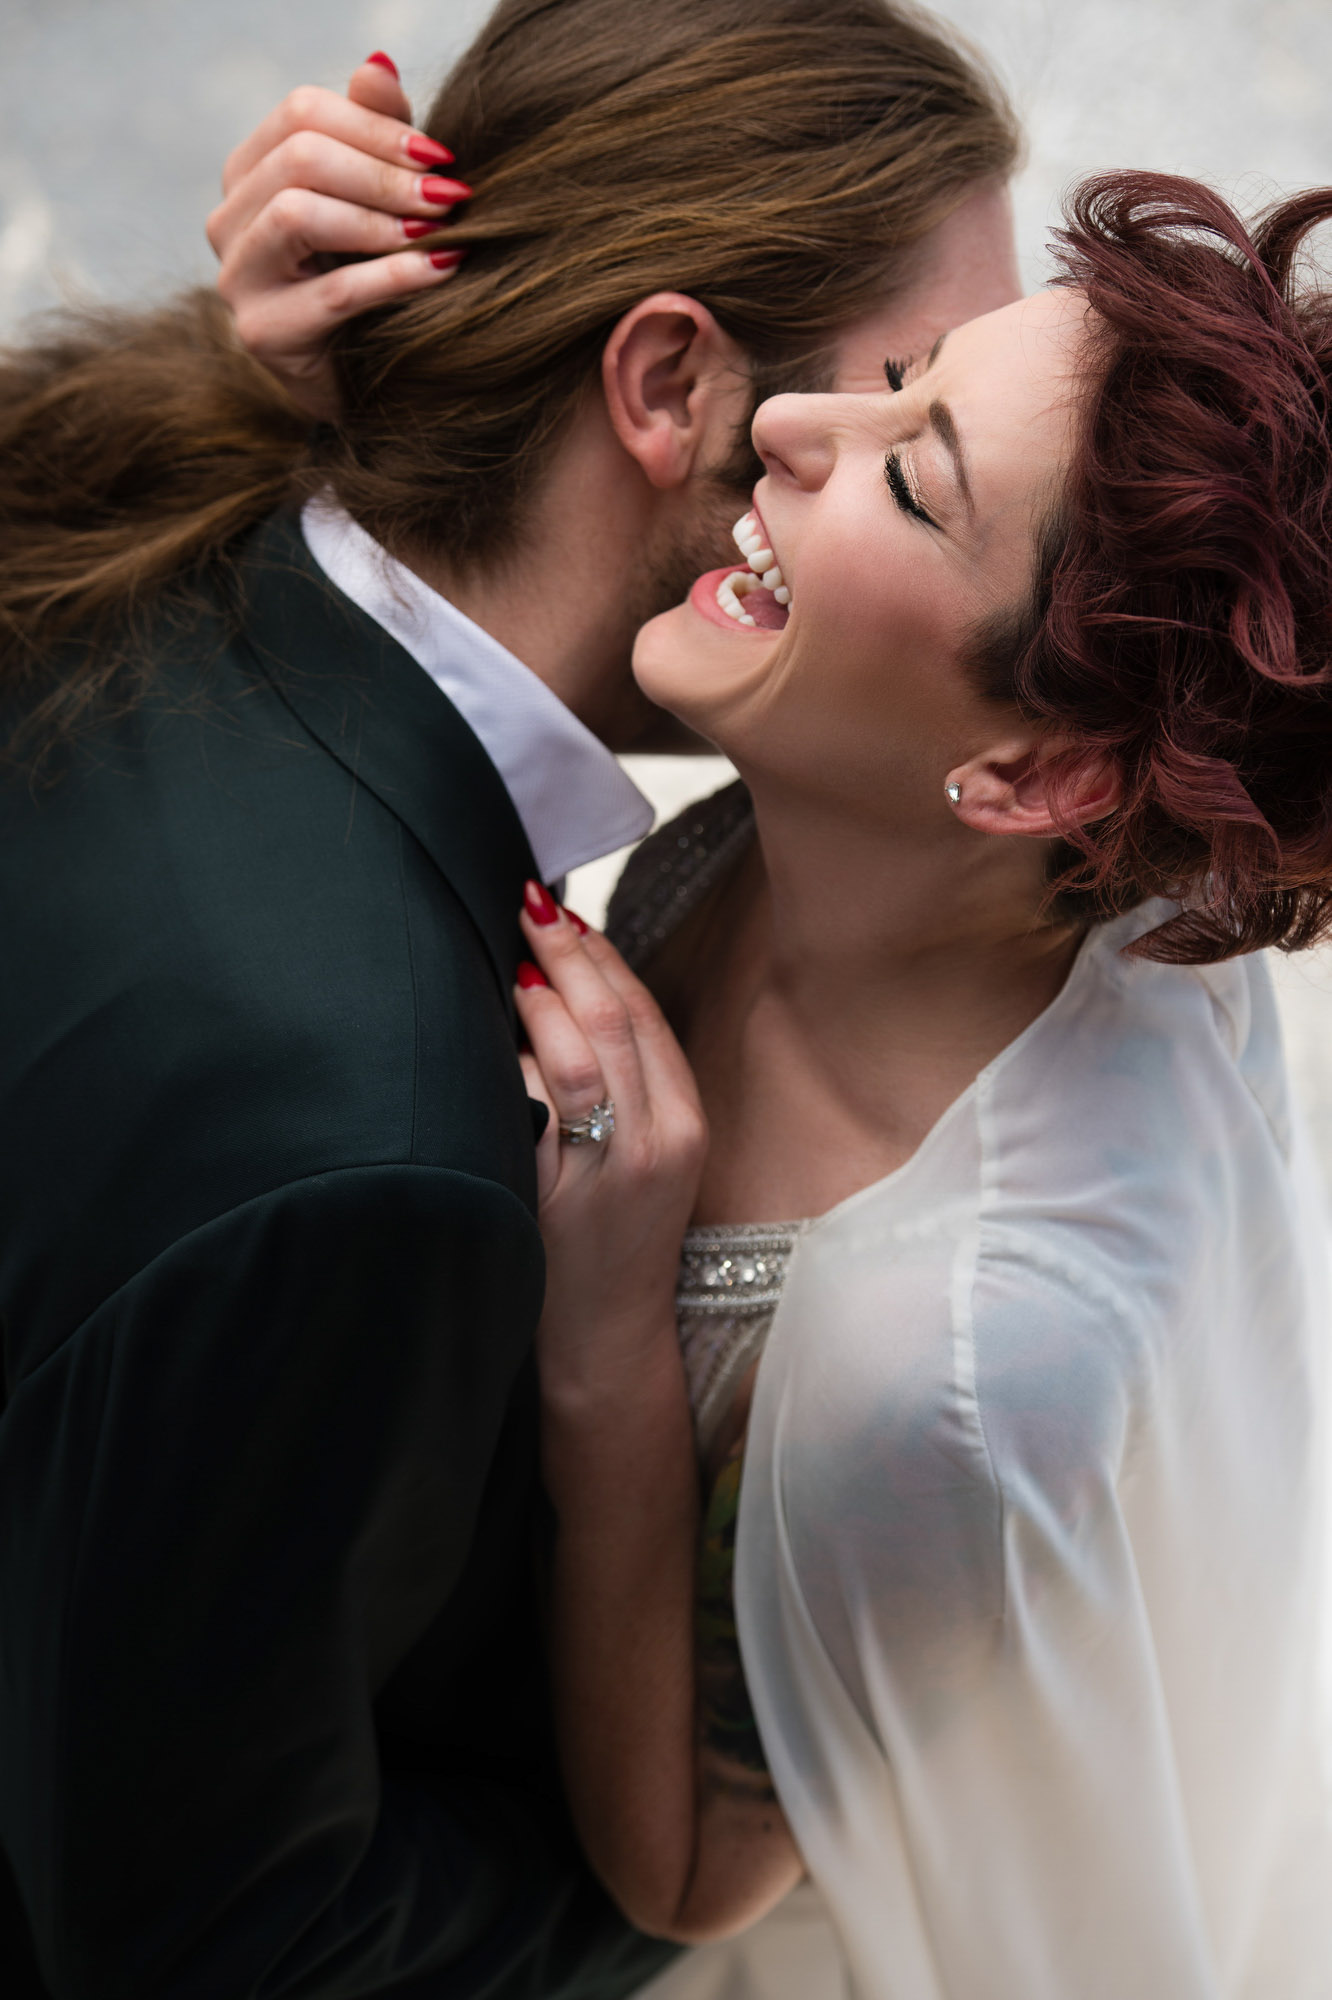 red-haired-bride-laughs-with-joy-while-embracing-groom-best-wedding-photos-jerry-ghionis-top-las-vegas